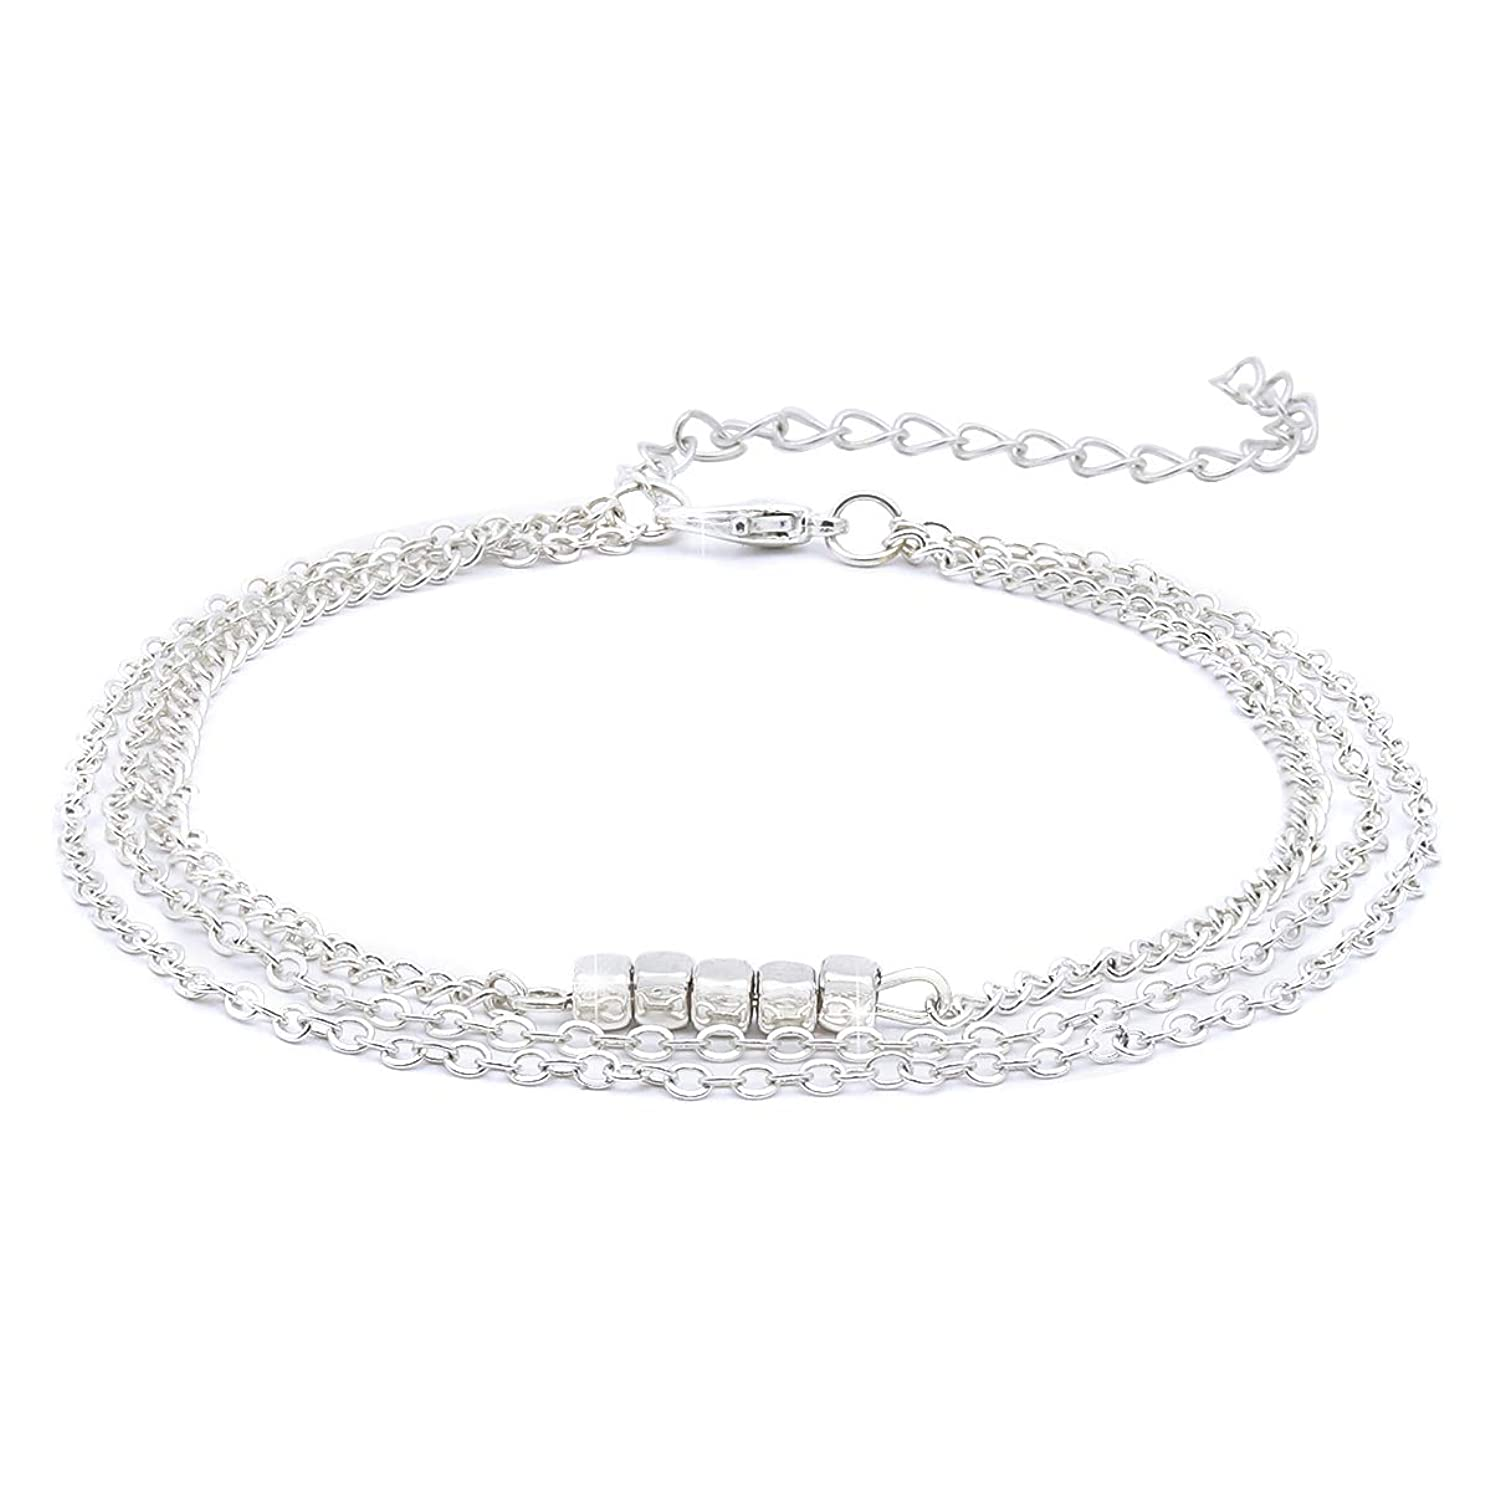 Crazy Feng Ankle Sterling Silver 14K Gold Adjustable Beach Anklet Bracelet Multi-Layer Foot Jewelry Set for Women,Girls